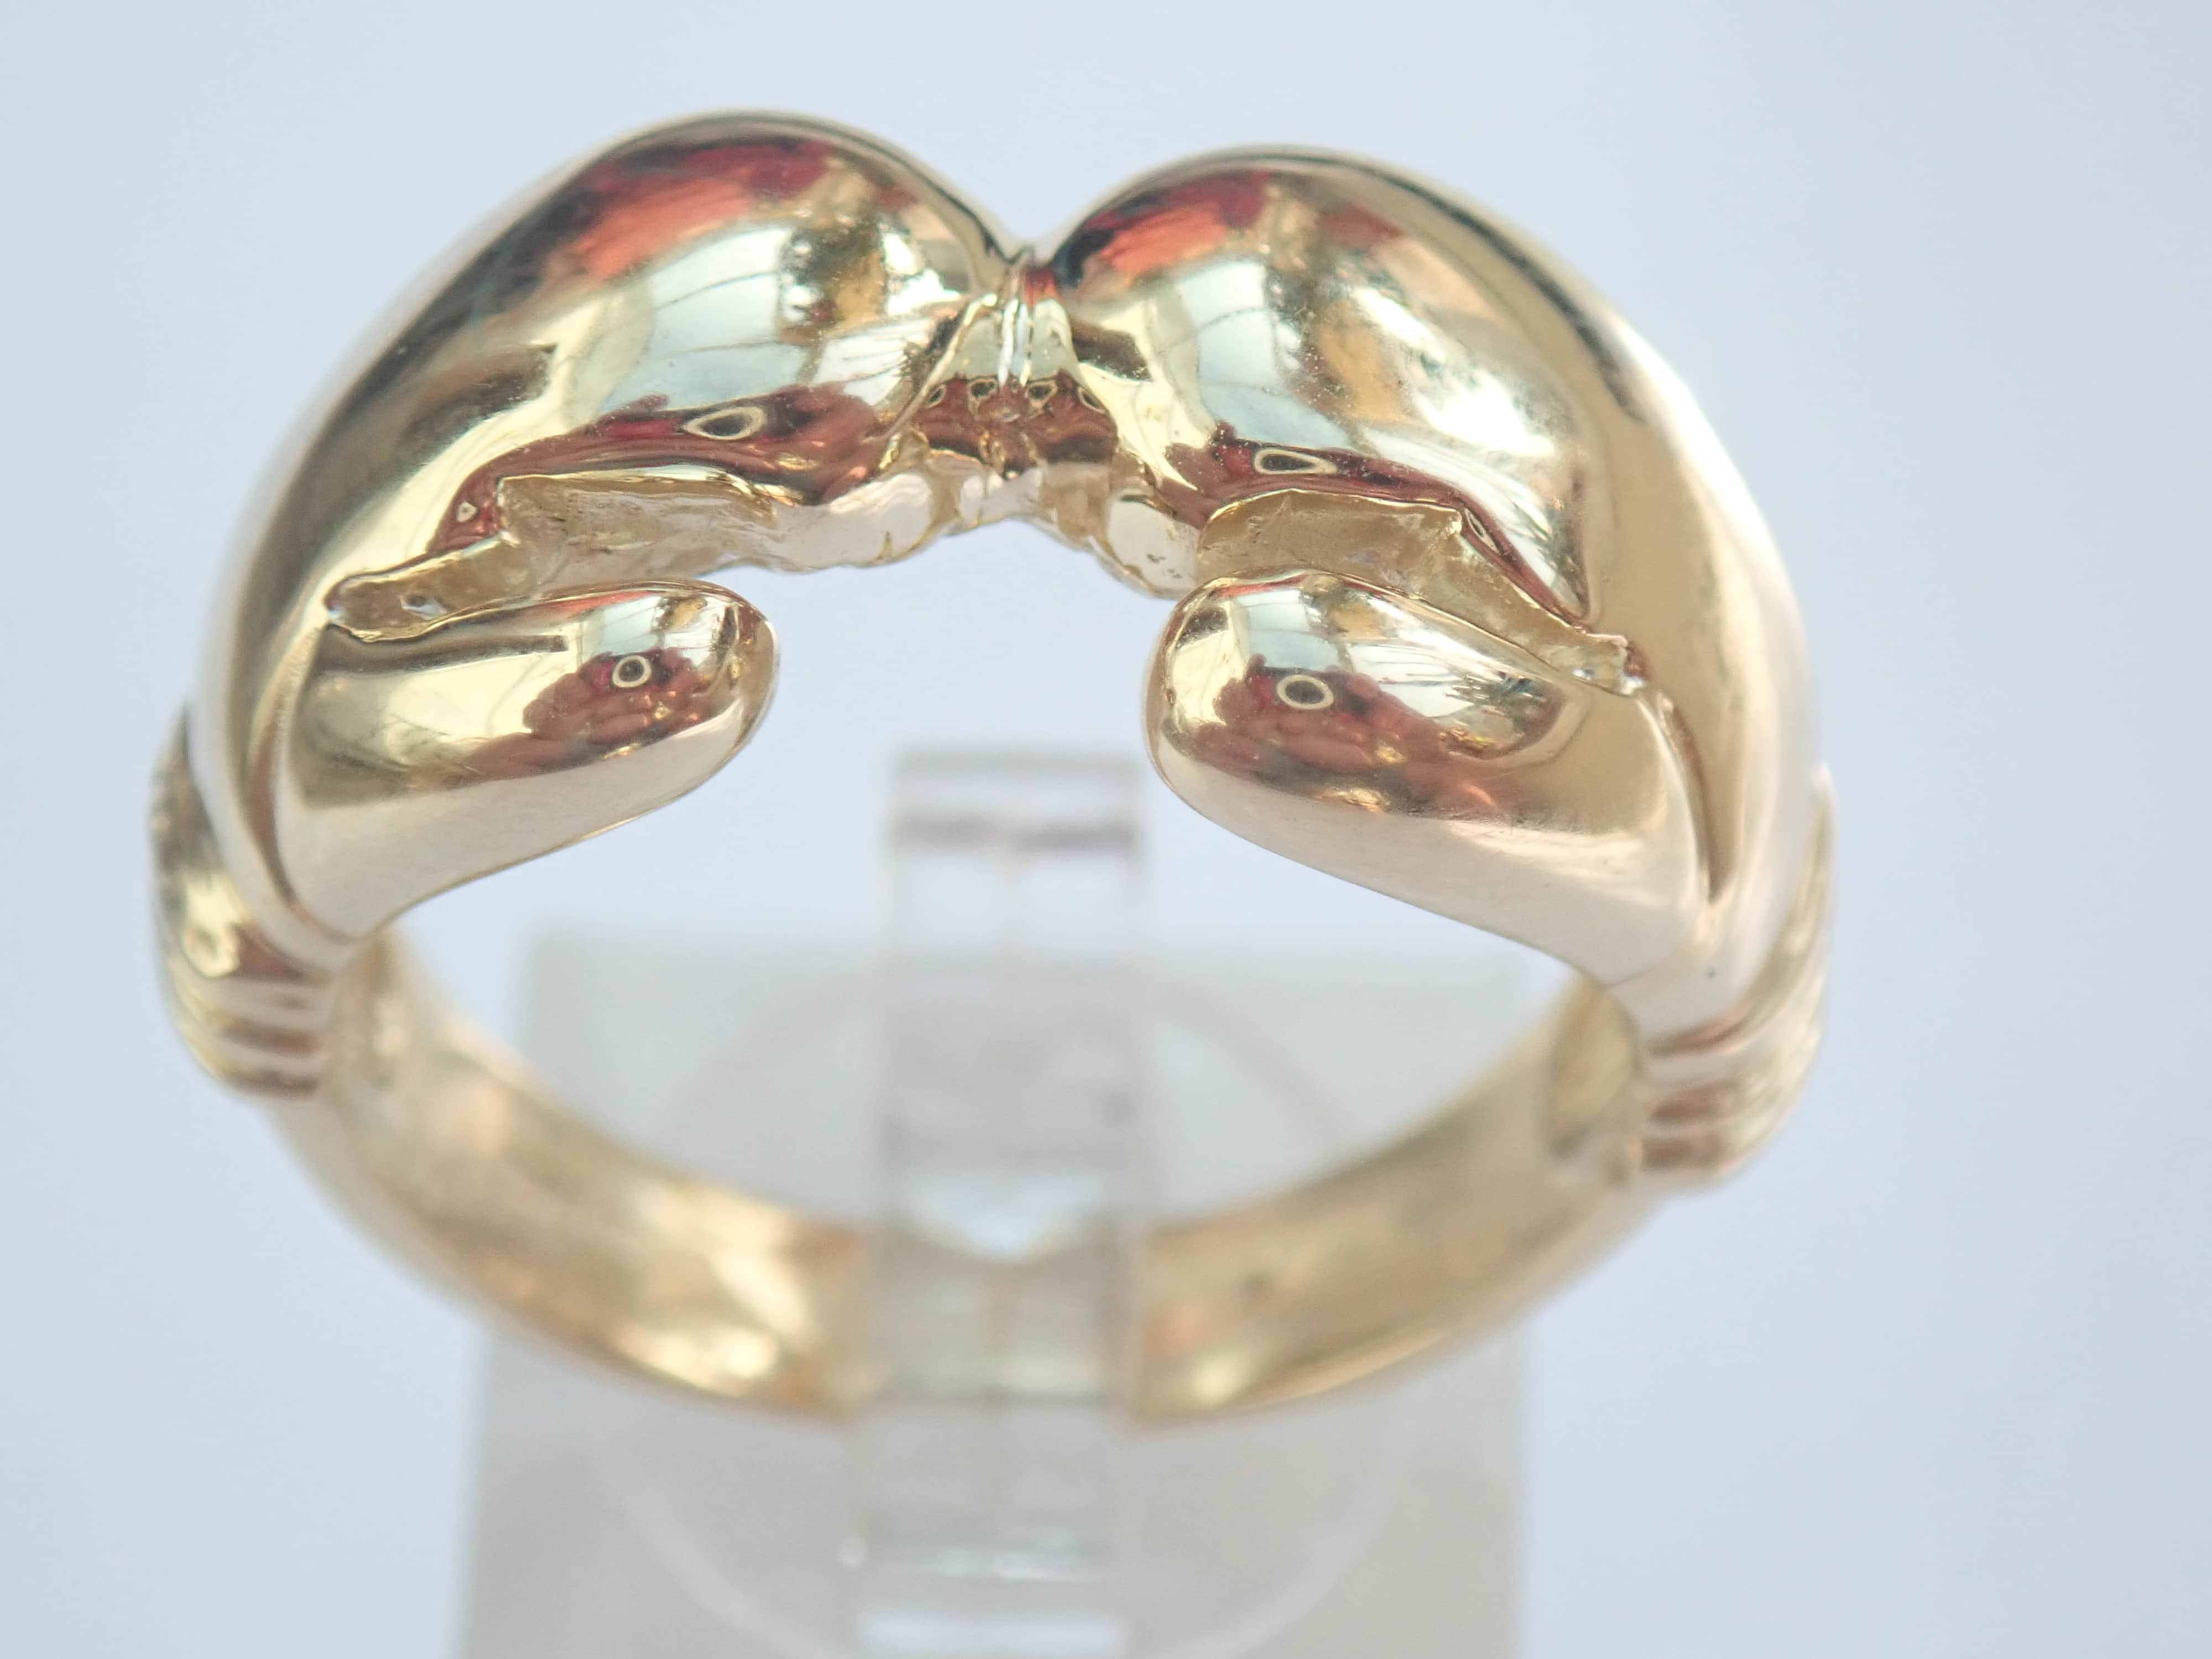 AZZ00506 - 375 Solid 9ct Yellow Gold Boxing Glove Ring Size X